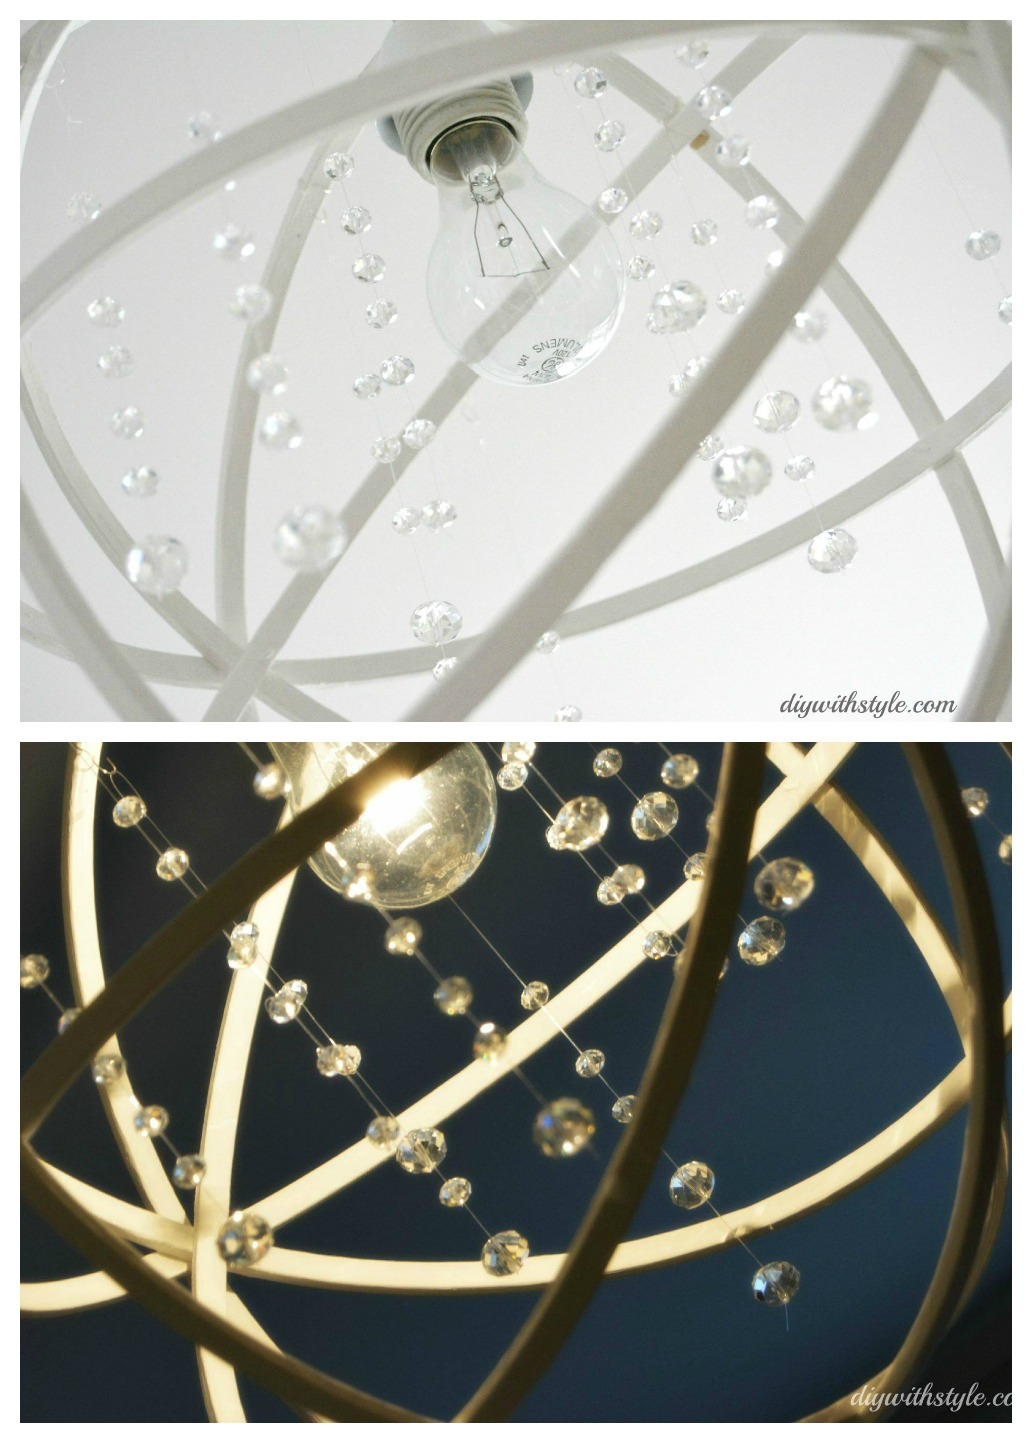 UPCOMING POST DIY ORB CHANDELIER DIY With Style – Diy Orb Chandelier